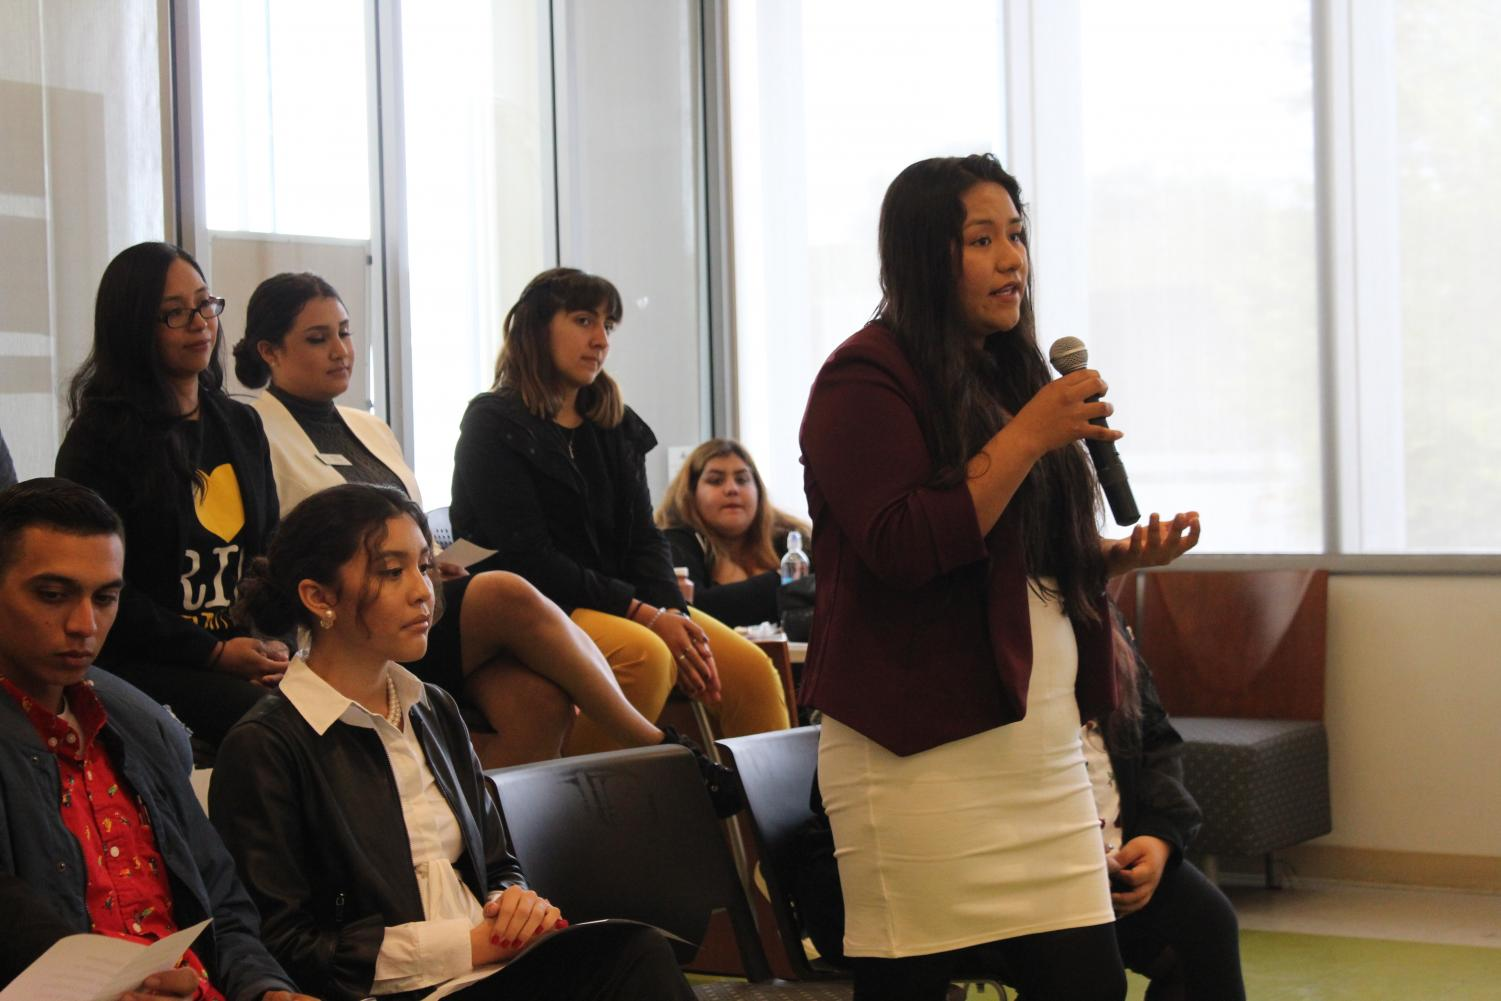 The Associated Students of Rio Hondo College Candidate Forum took place Monday in the Student Union. Student Trustee candidate, Diana Laureano, shares her campaign pledge with the room. Her fellow candidates listen intently behind her.